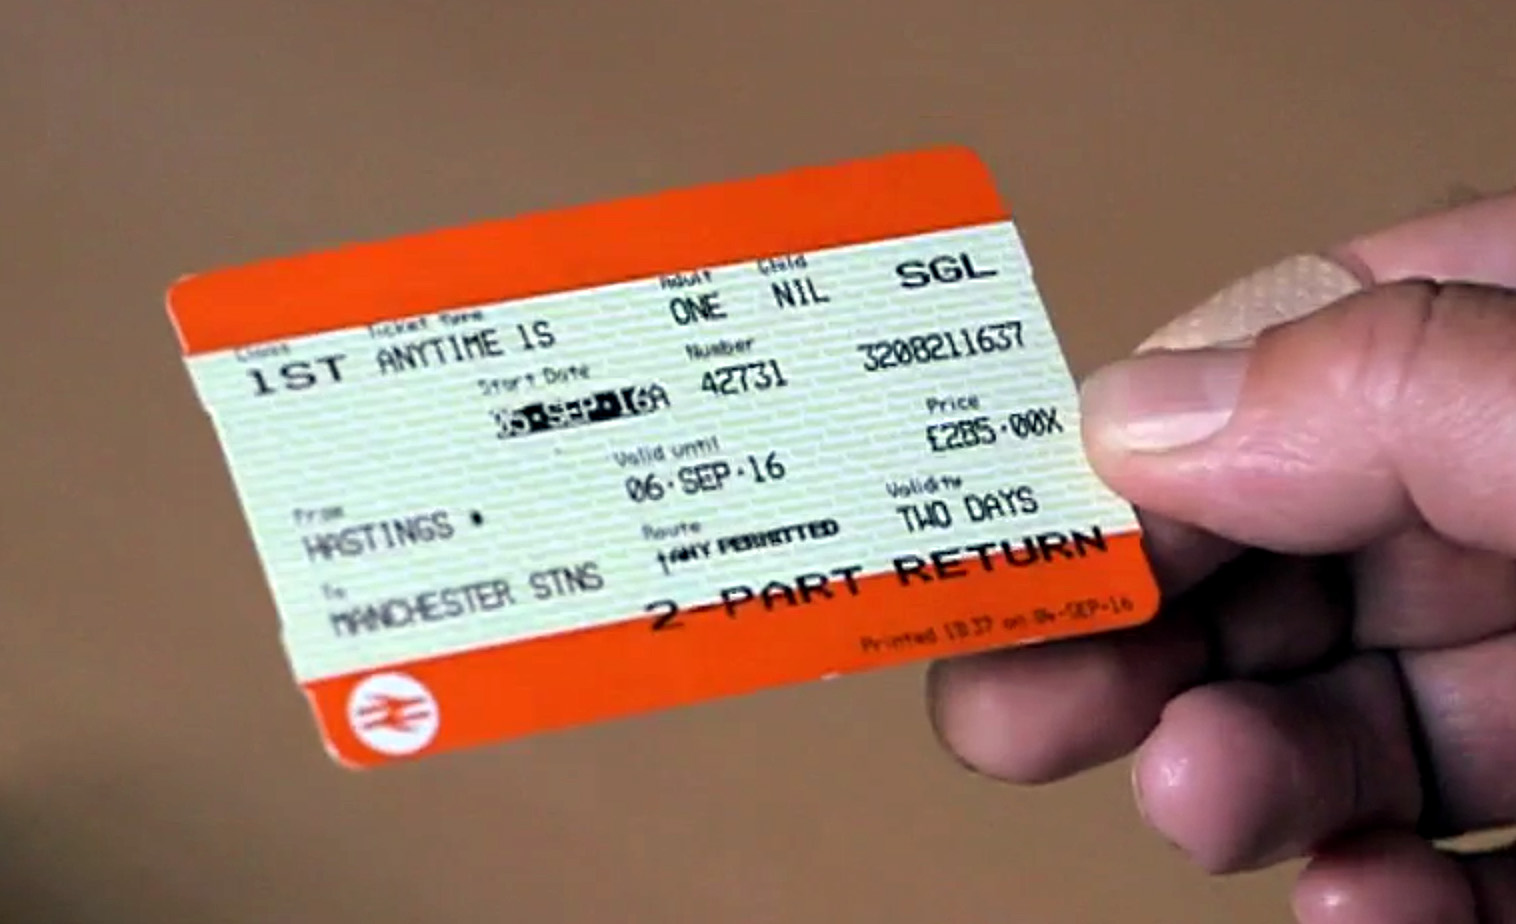 Fake National Rail train tickets